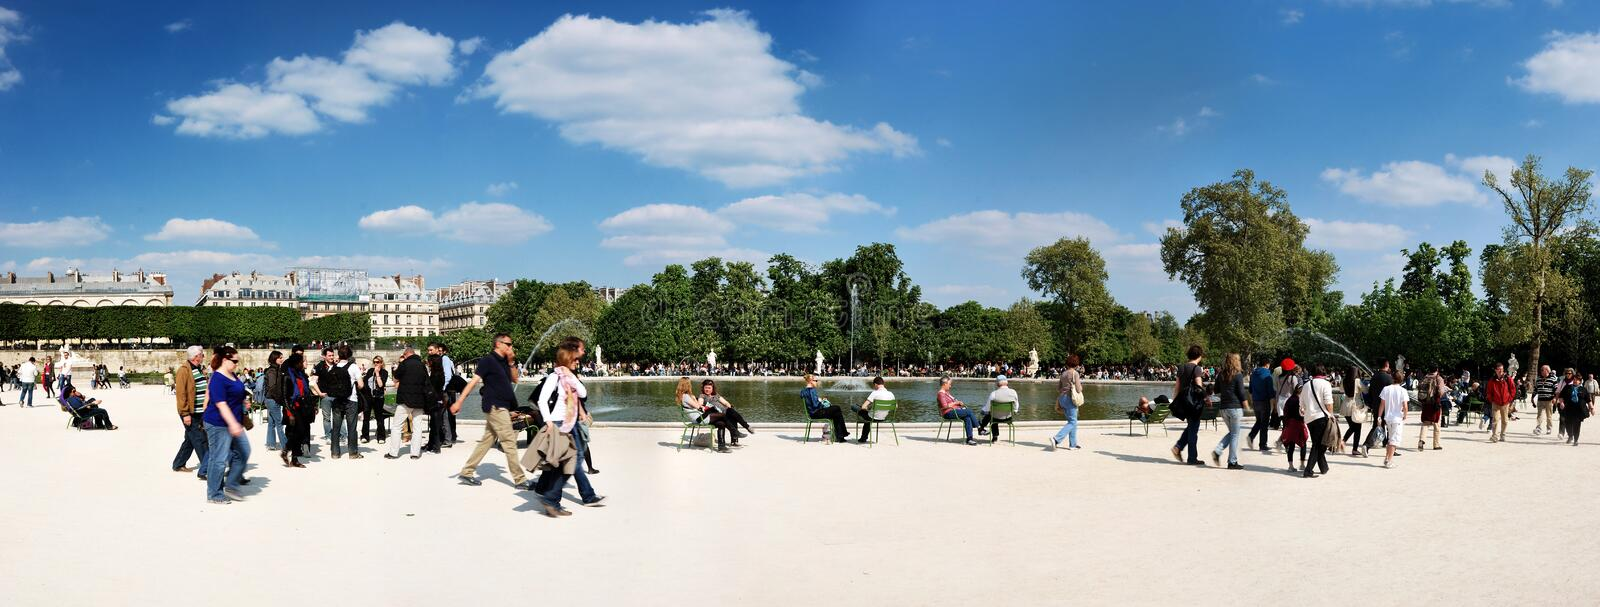 Garden of Tuileries near the Louvre in Paris stock photography